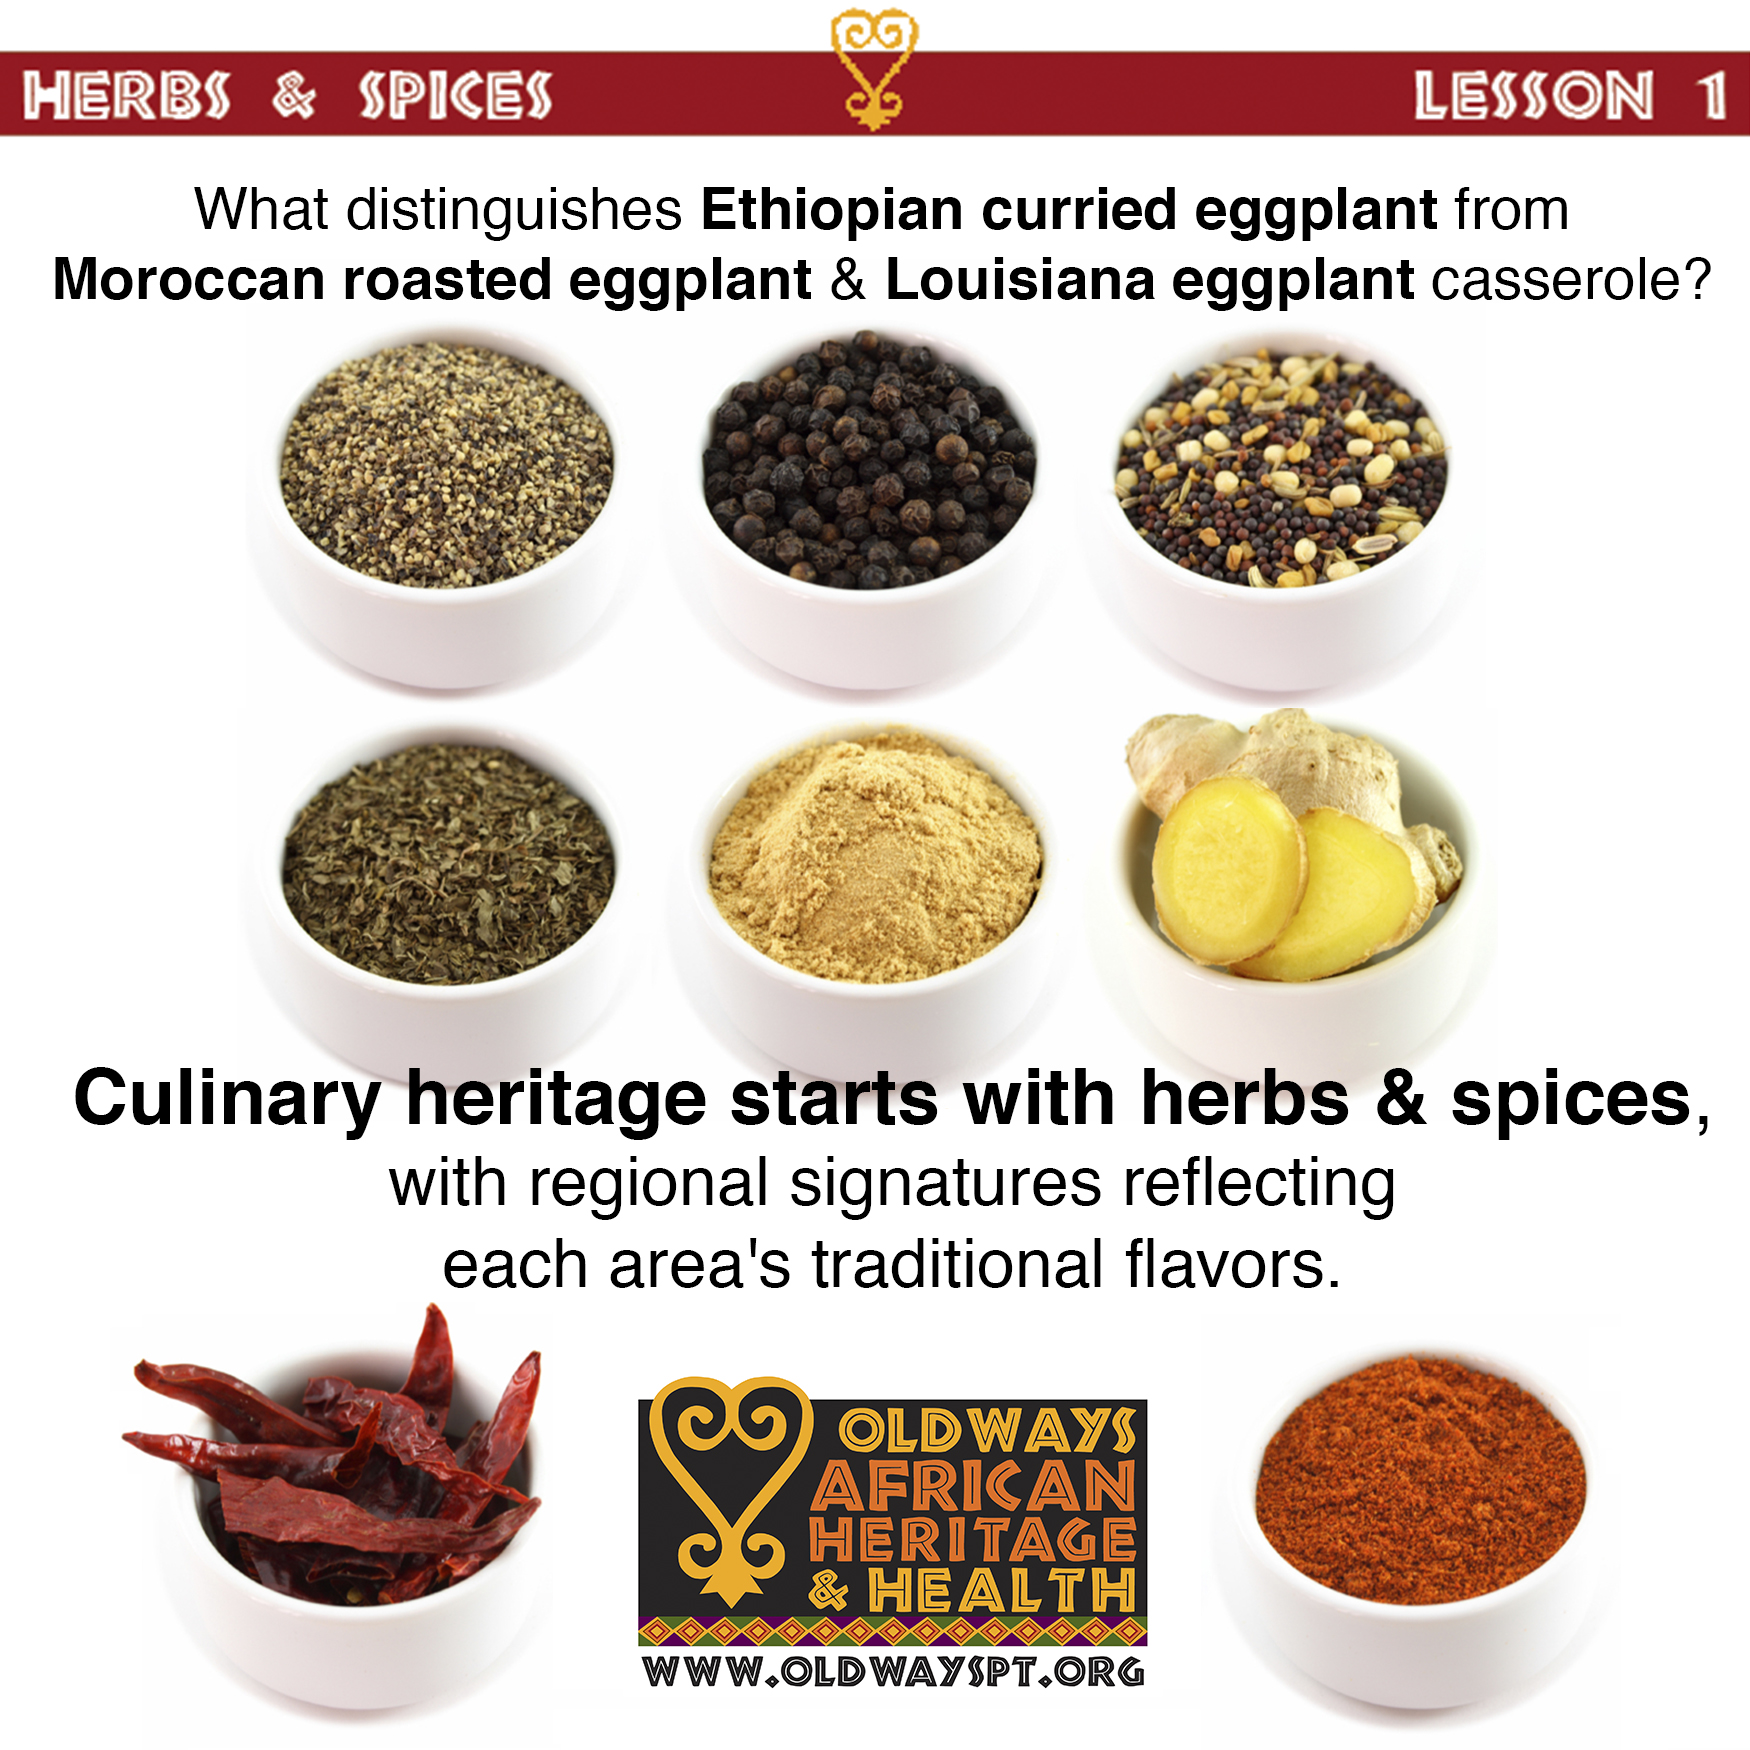 ATOAH_Lesson1_Spices.jpg